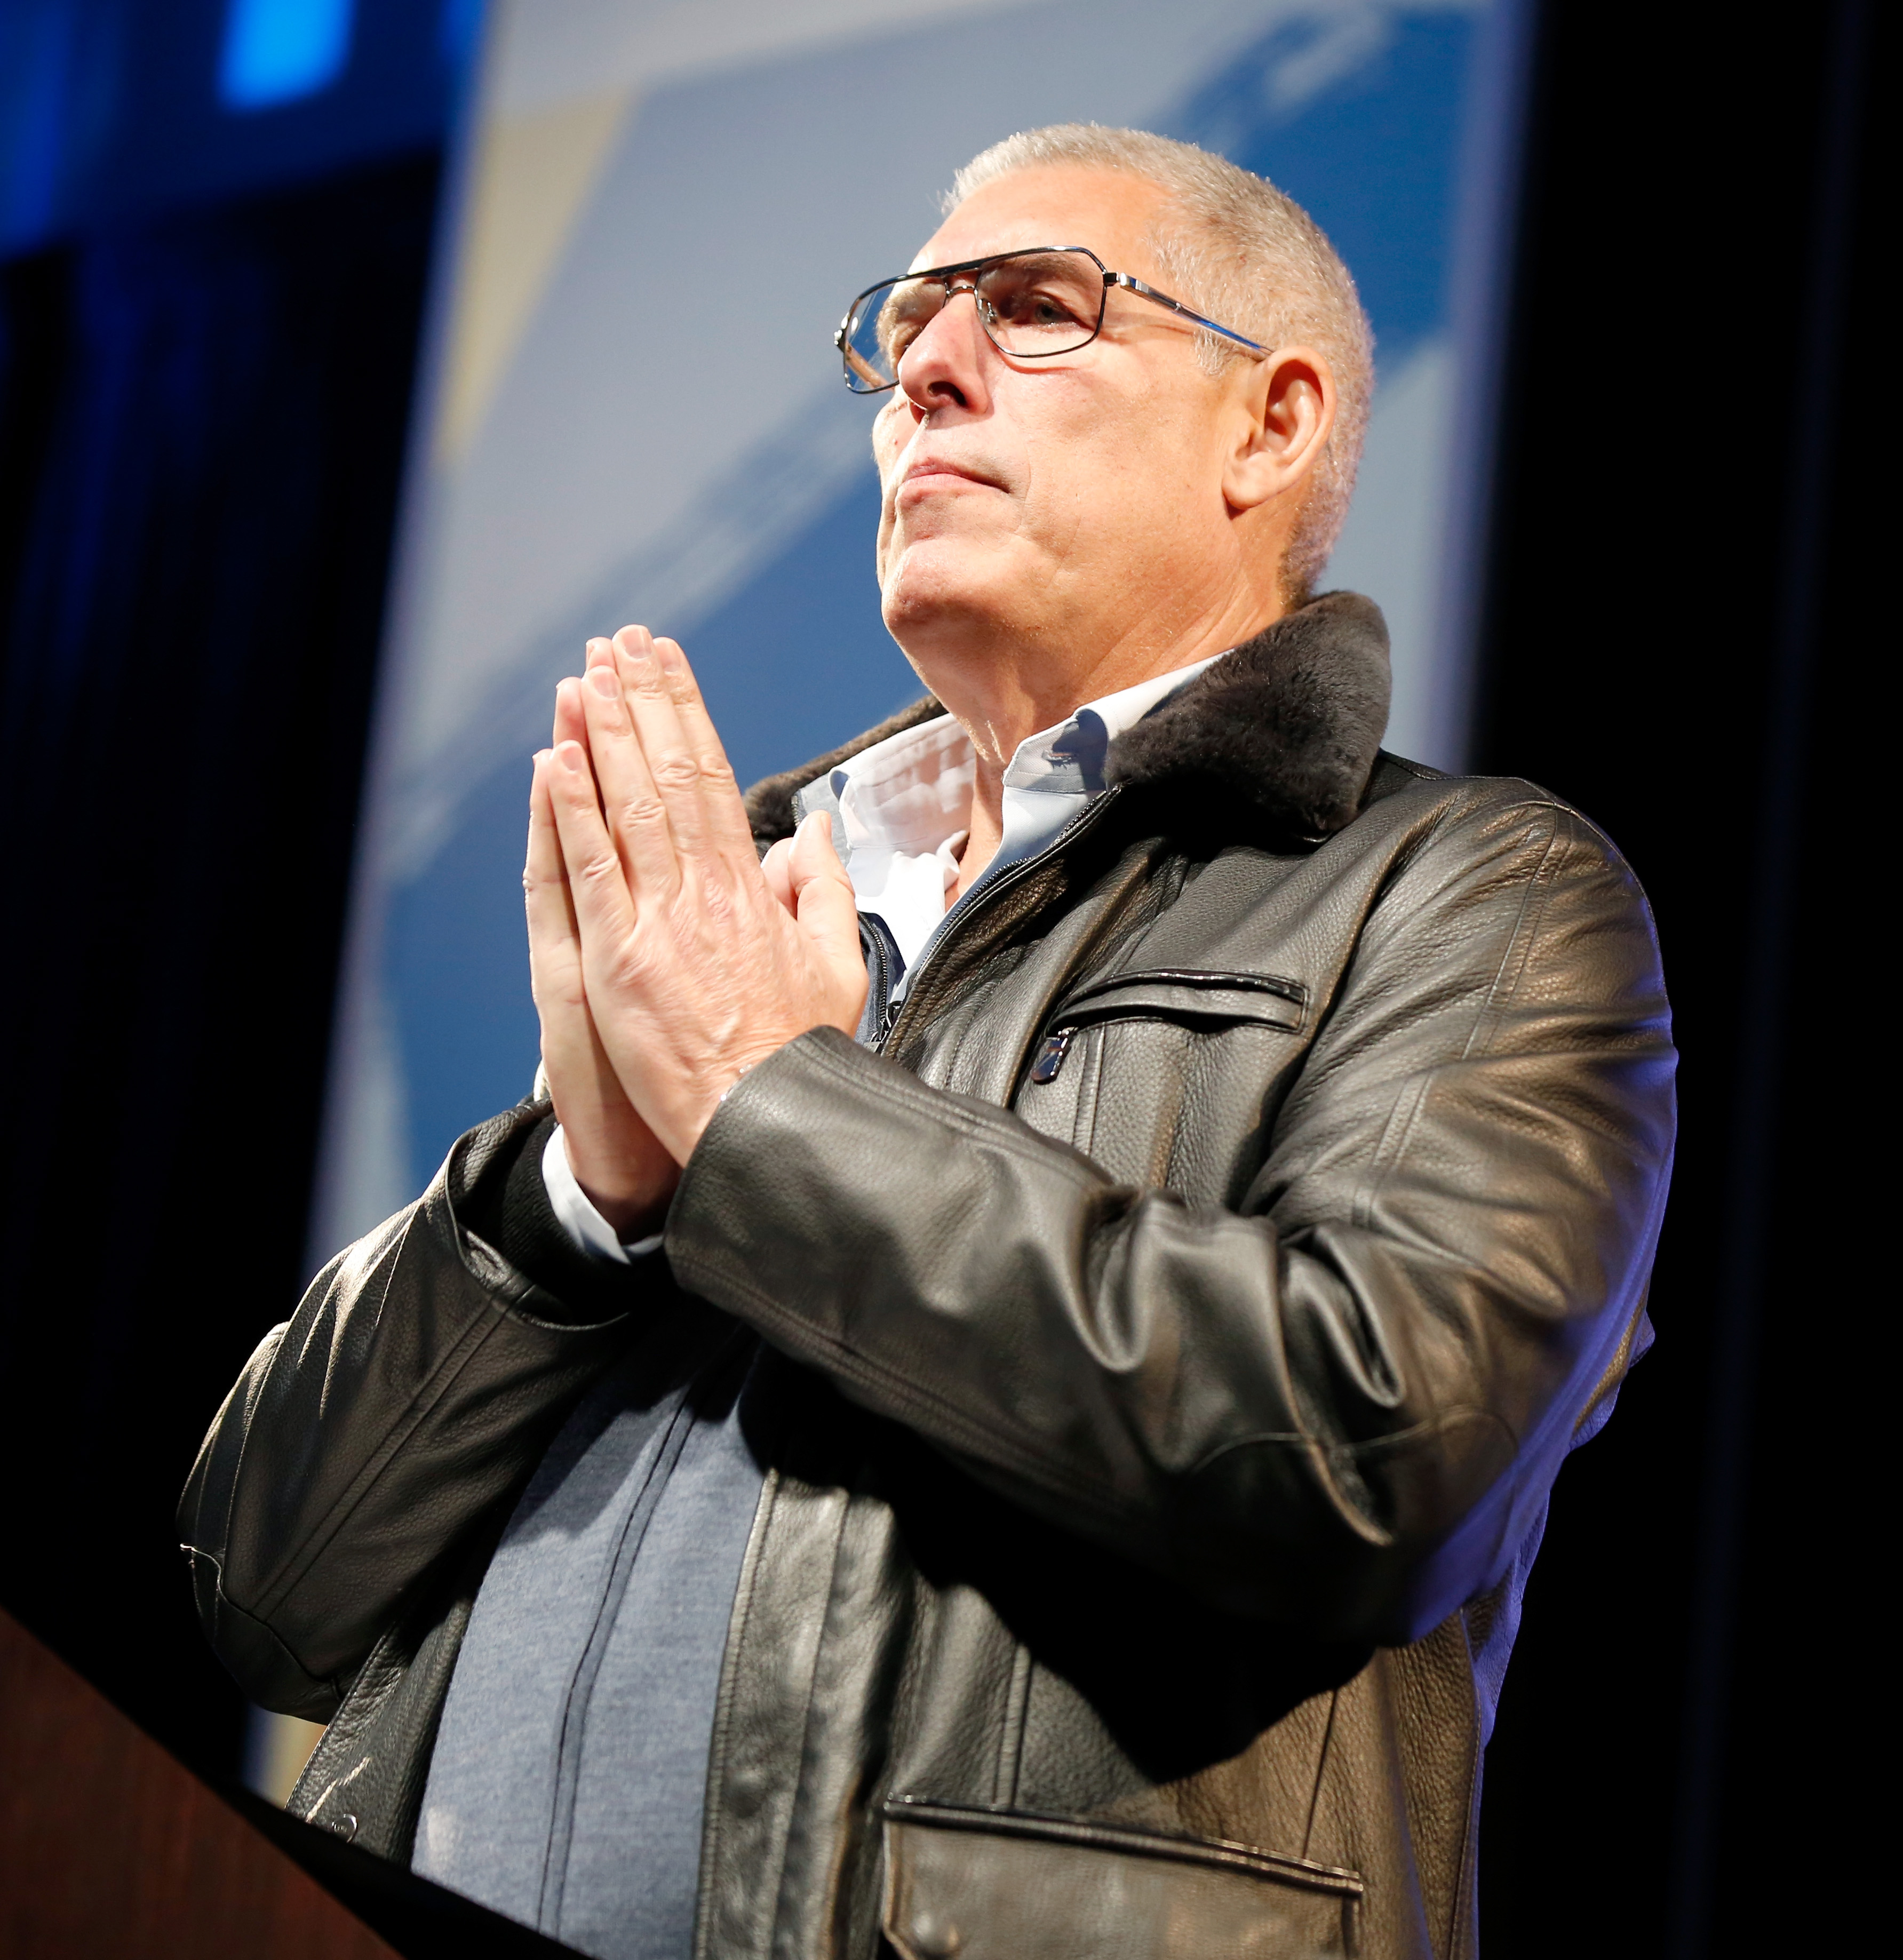 Music Keynote Lyor Cohen | Photo by Sean Mathis/Getty Images